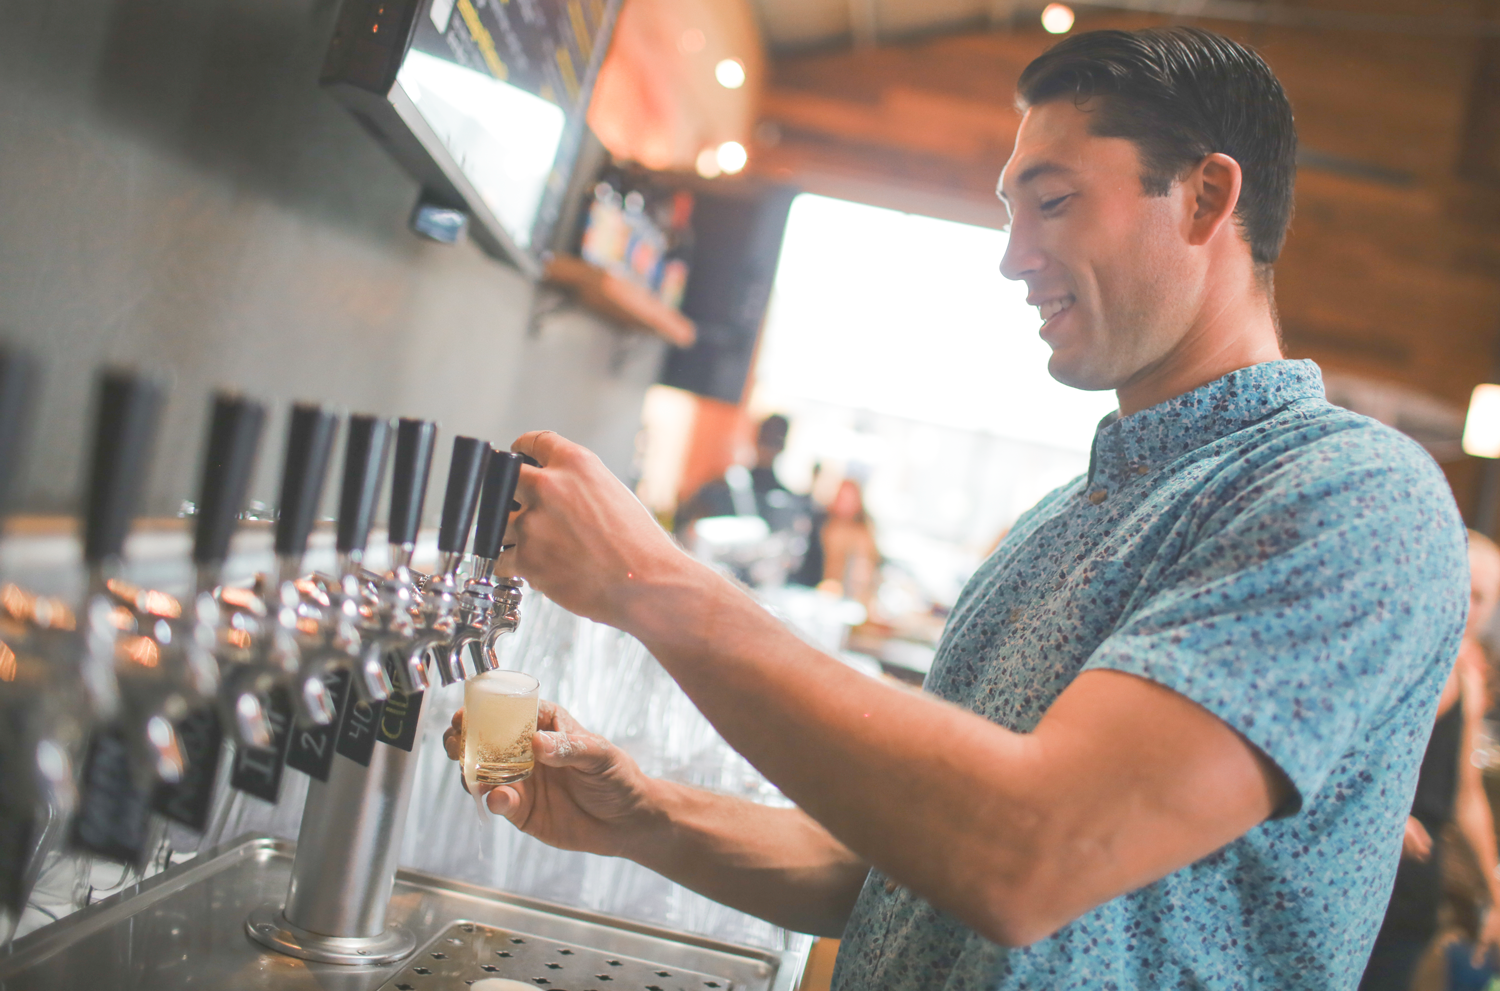 Taylor West pouring a beer at West End Tap & Kitchen, making it look easy.